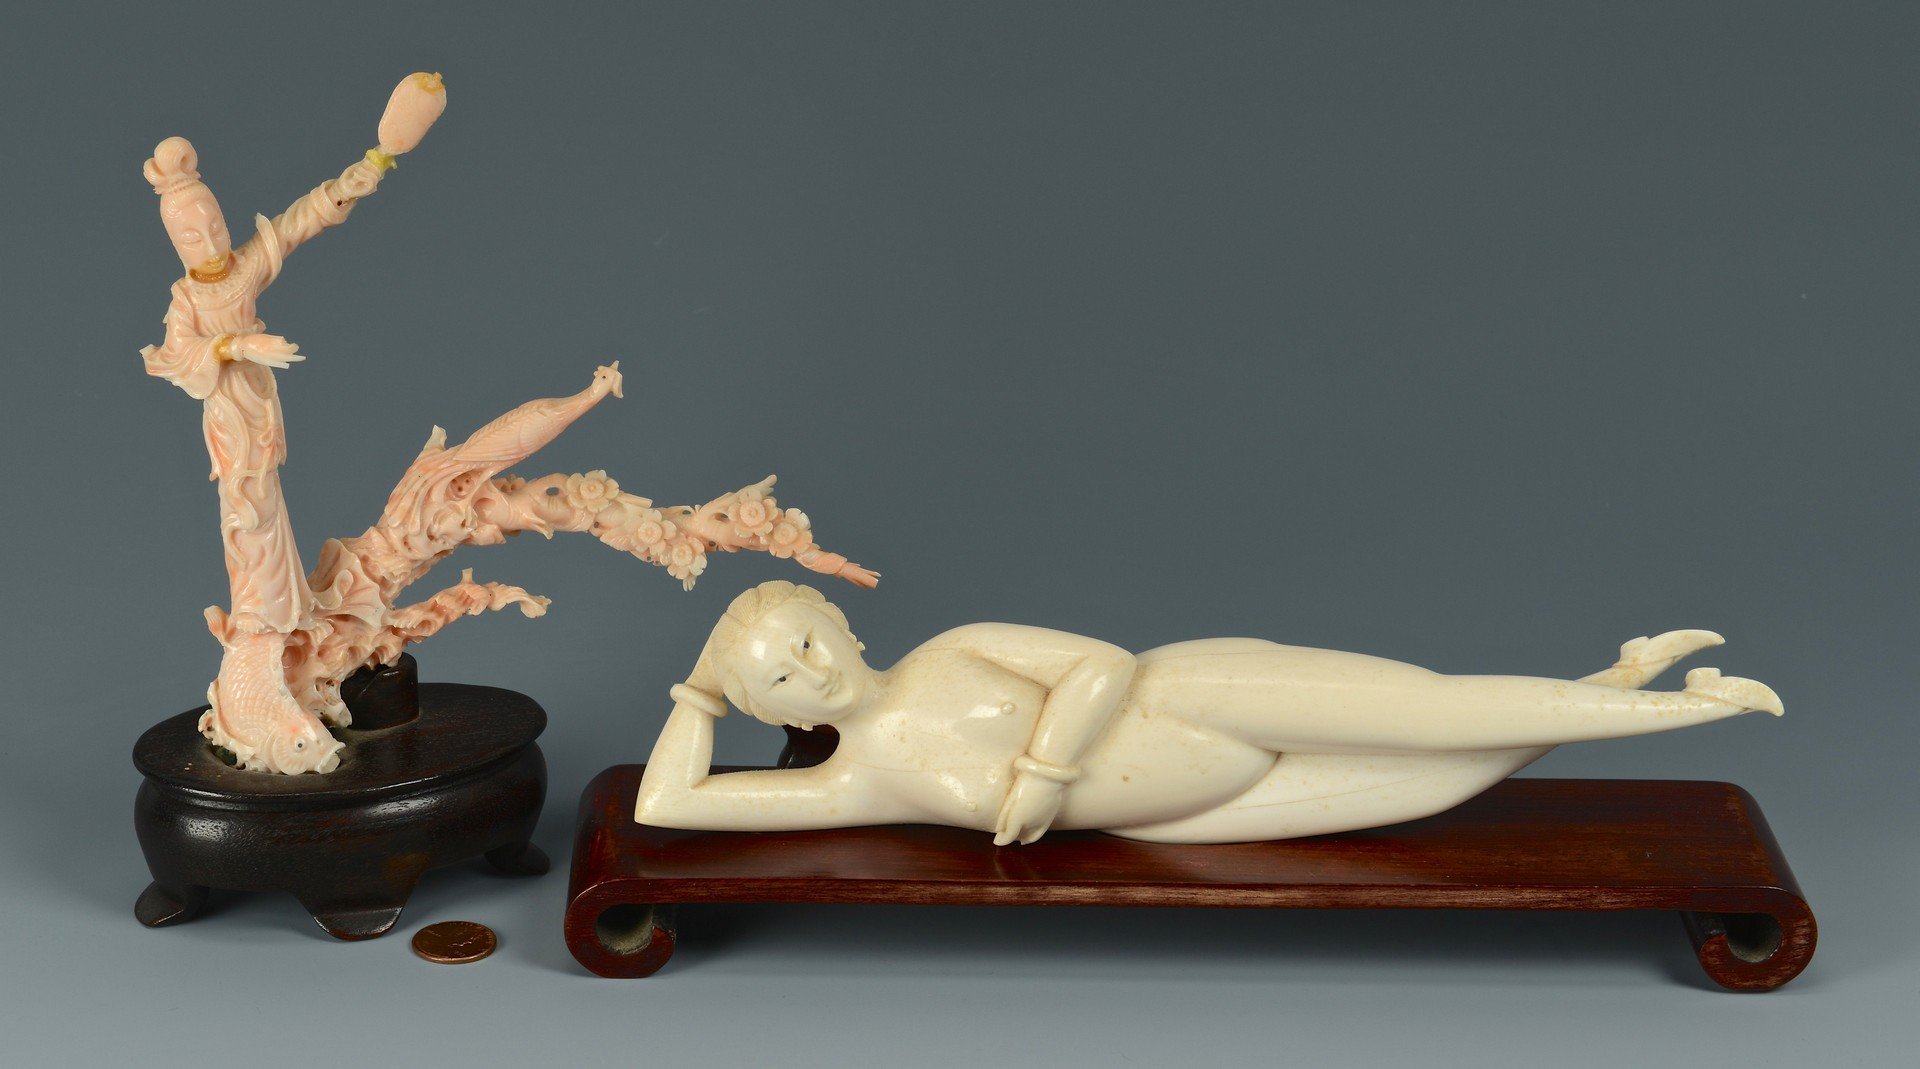 Lot 3383194: Chinese Ivory Doctor's Lady & Coral Quan Yin